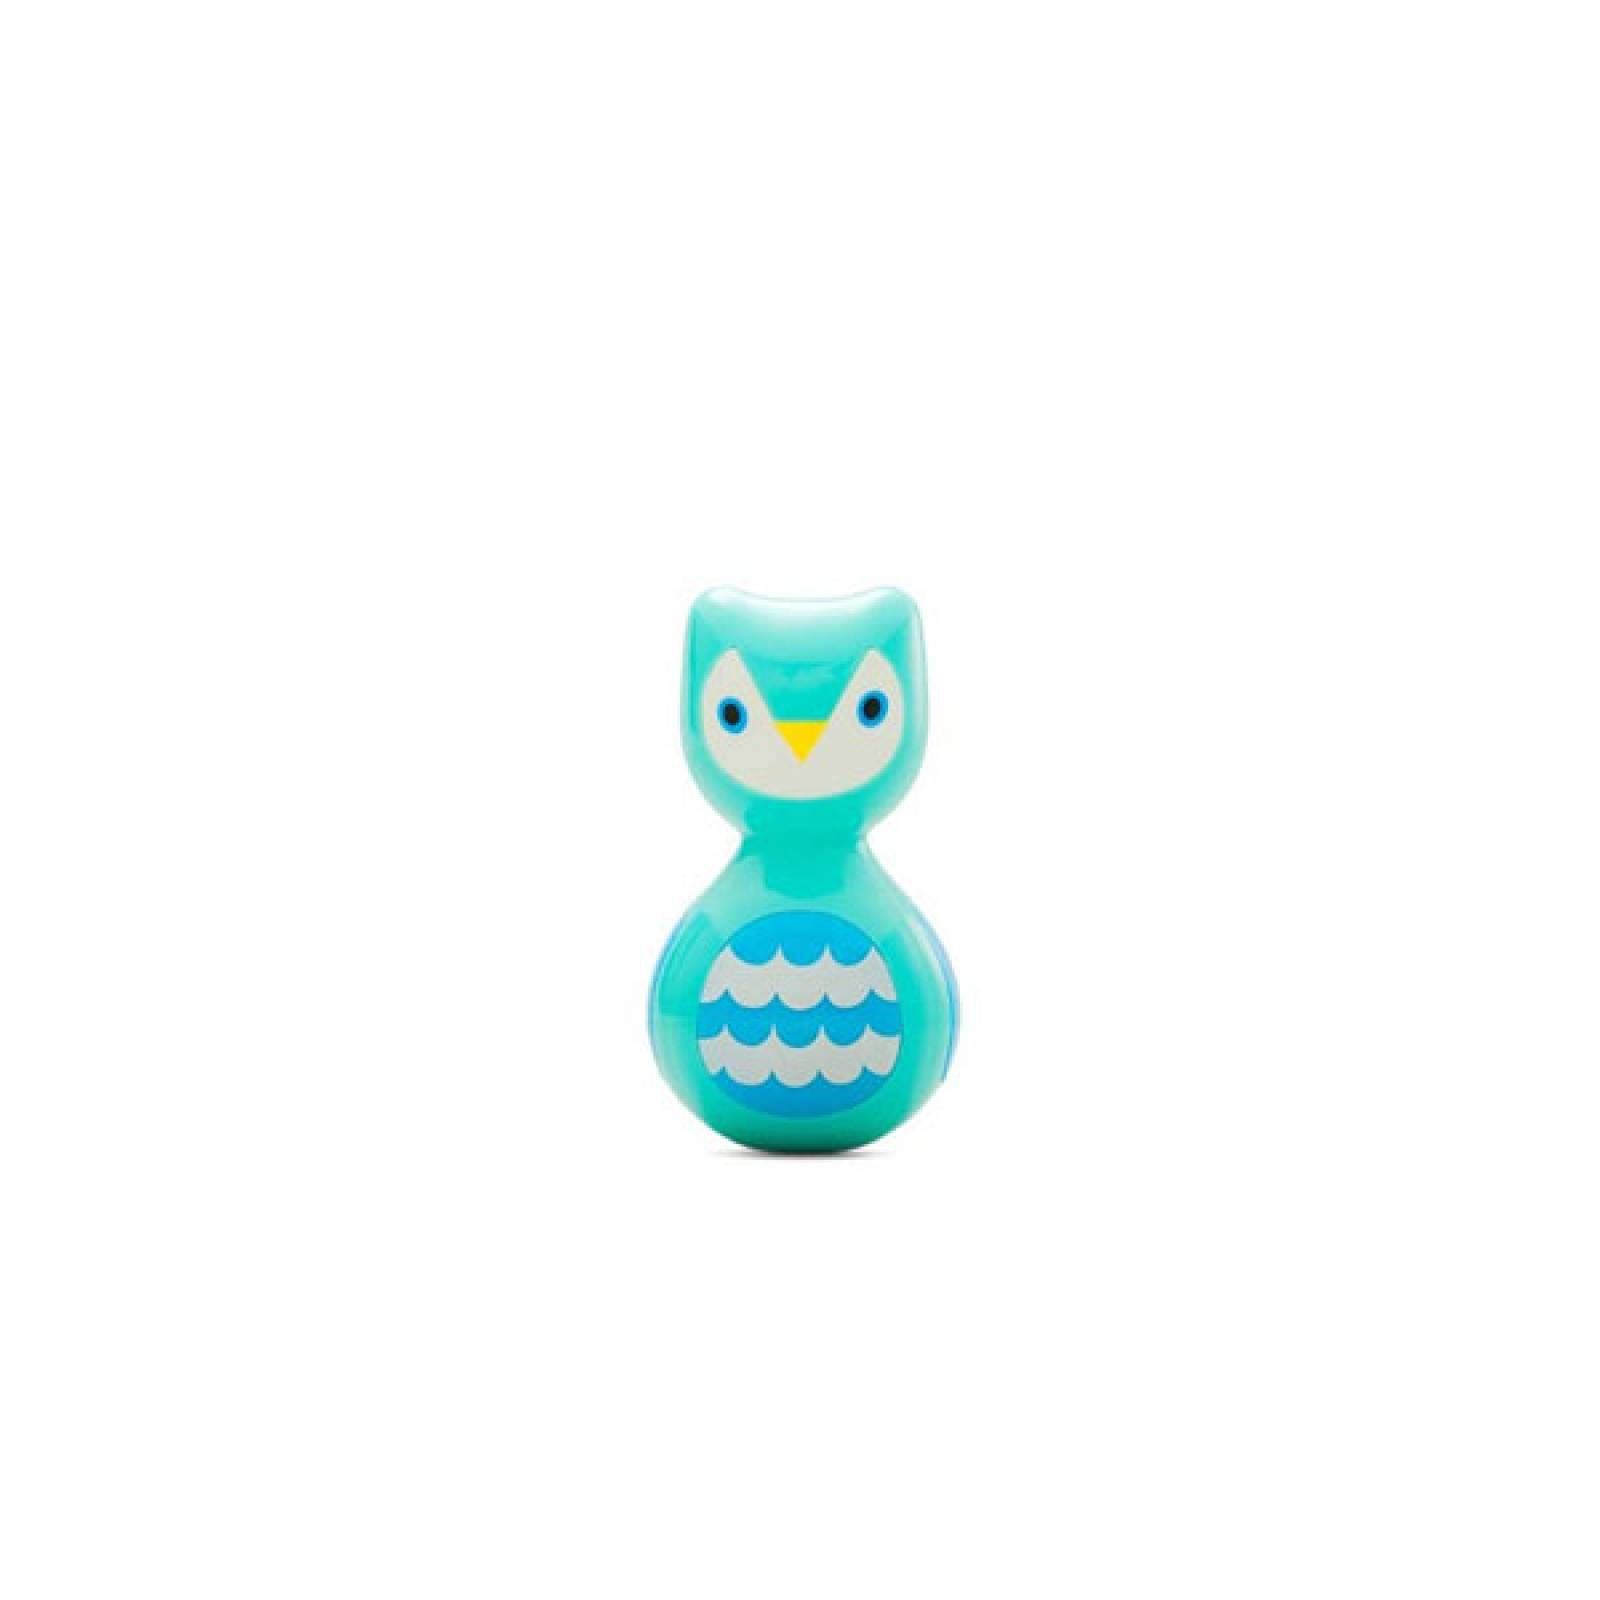 Owl Wobble Baby Toy By Kid O 0+